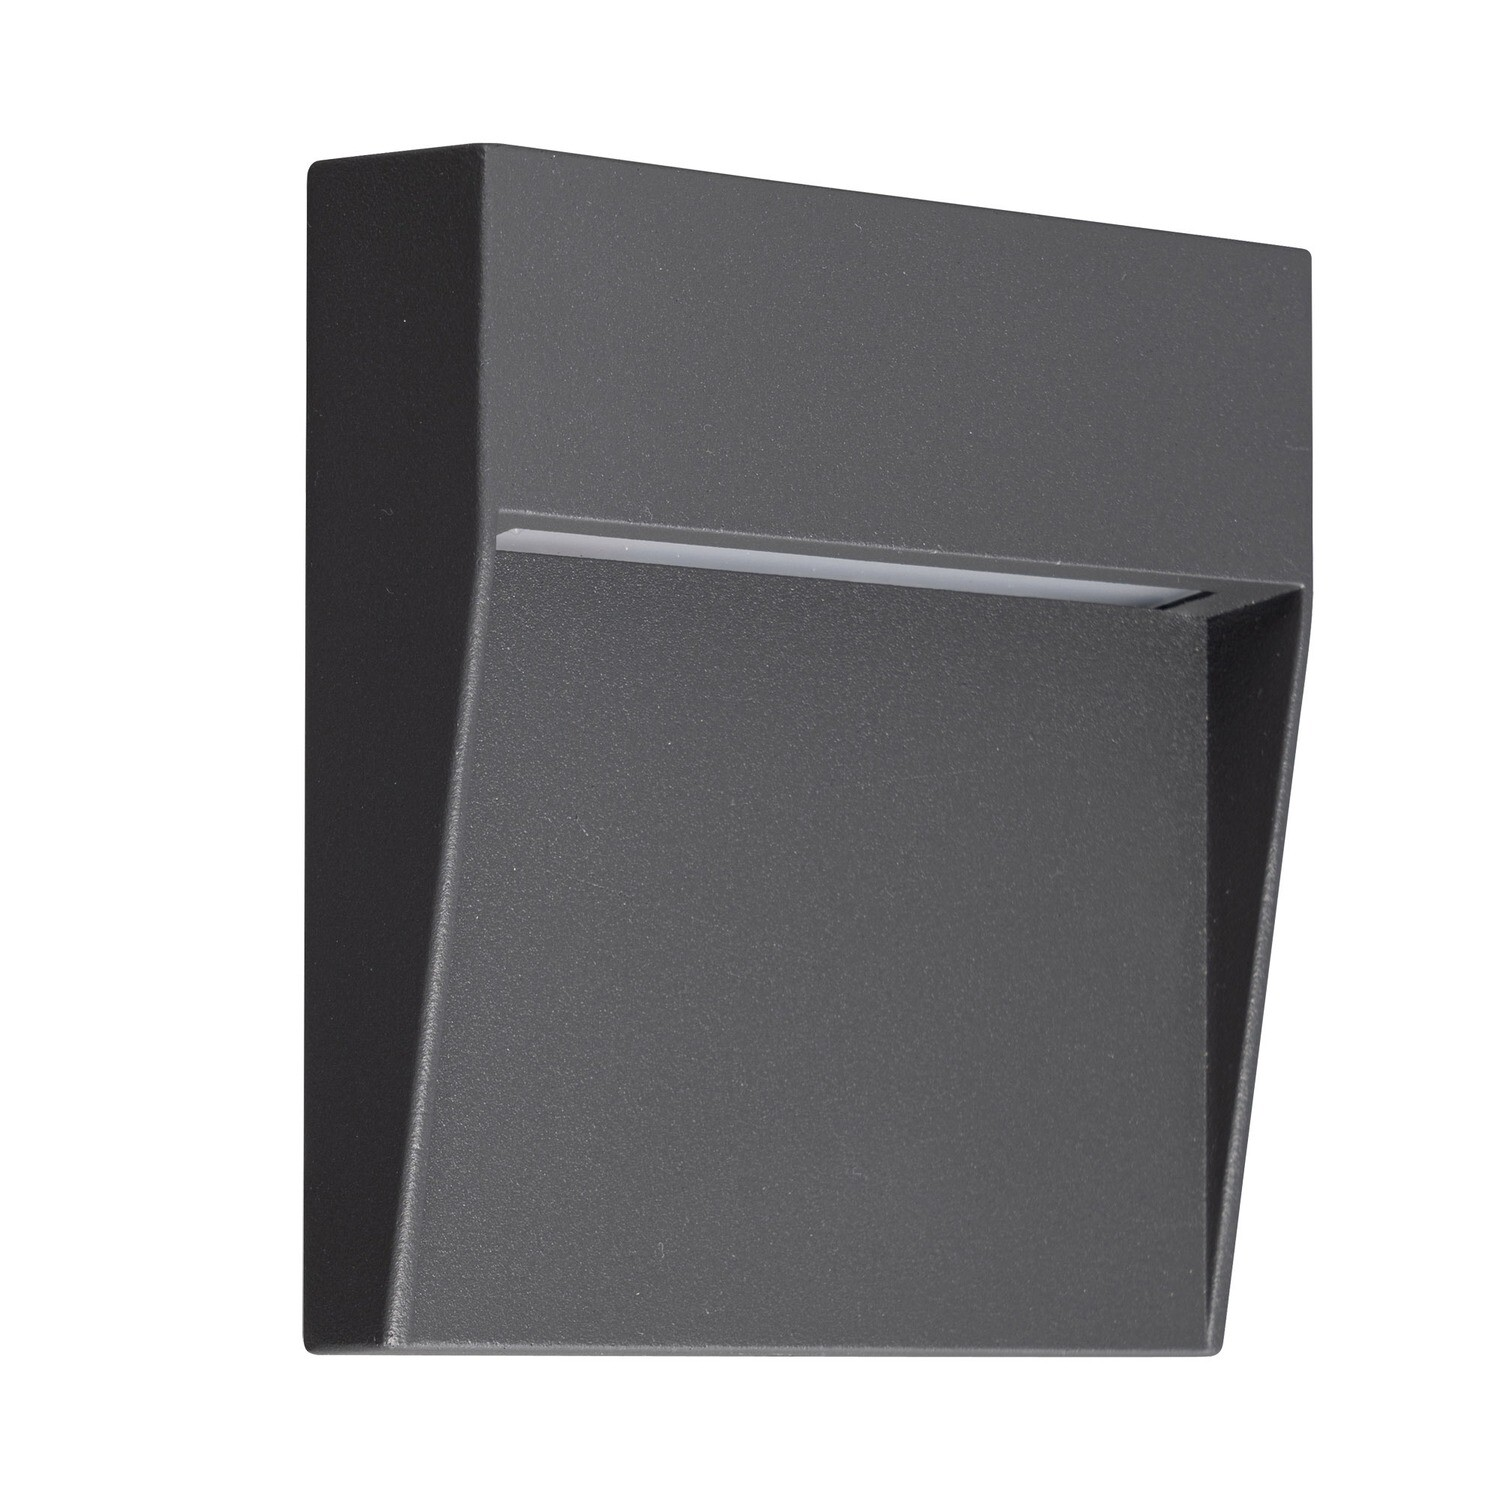 Baker Wall Lamp Small Square, 3W LED, 3000K, 150lm, IP54, Anthracite